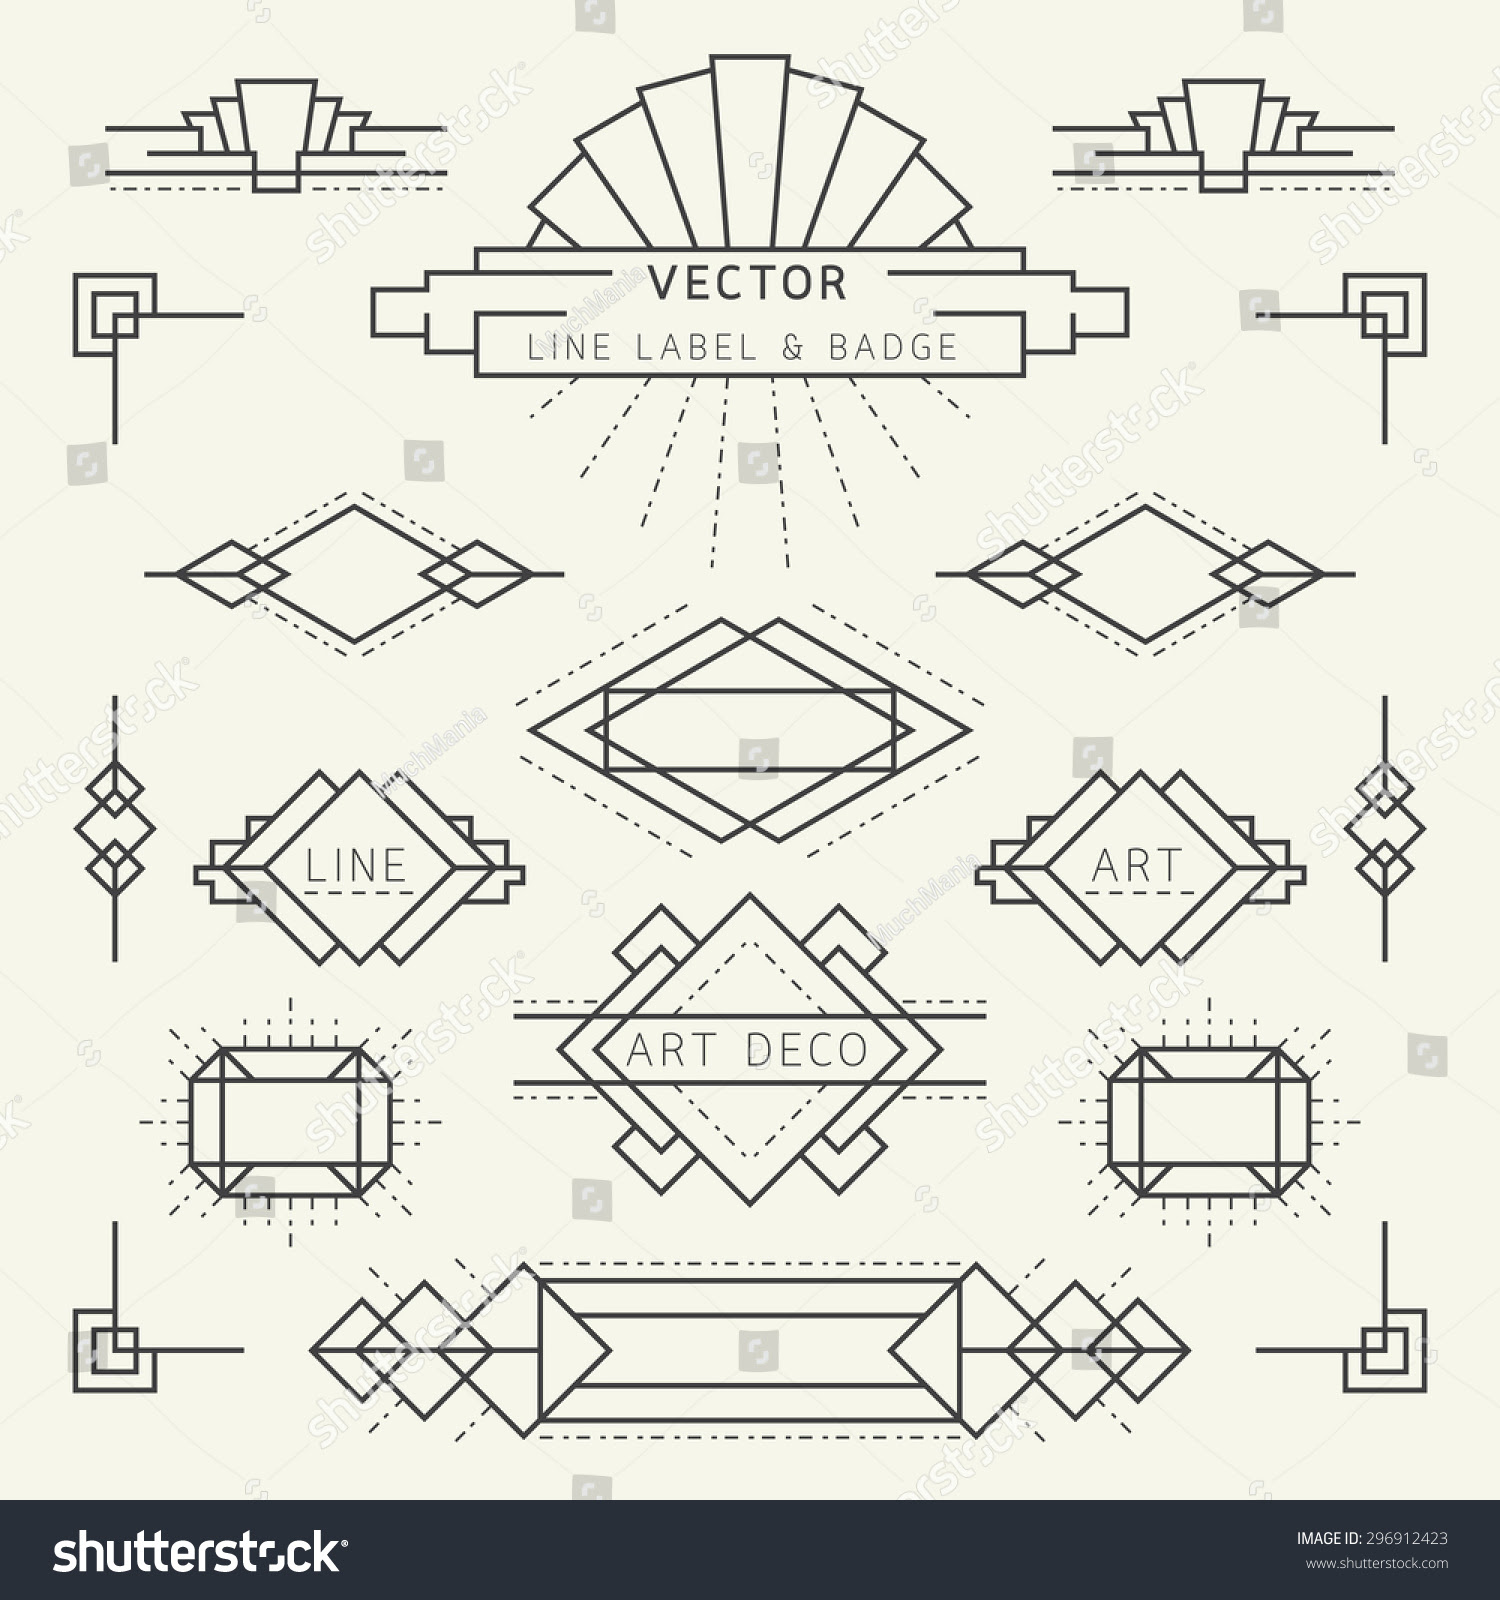 Art Deco Style Linear Geometric Labels And Badges Monochrome Graphic Elements Ad Ad Linear Geometric Styl Art Deco Logo Art Deco Font Bullet Journal Art